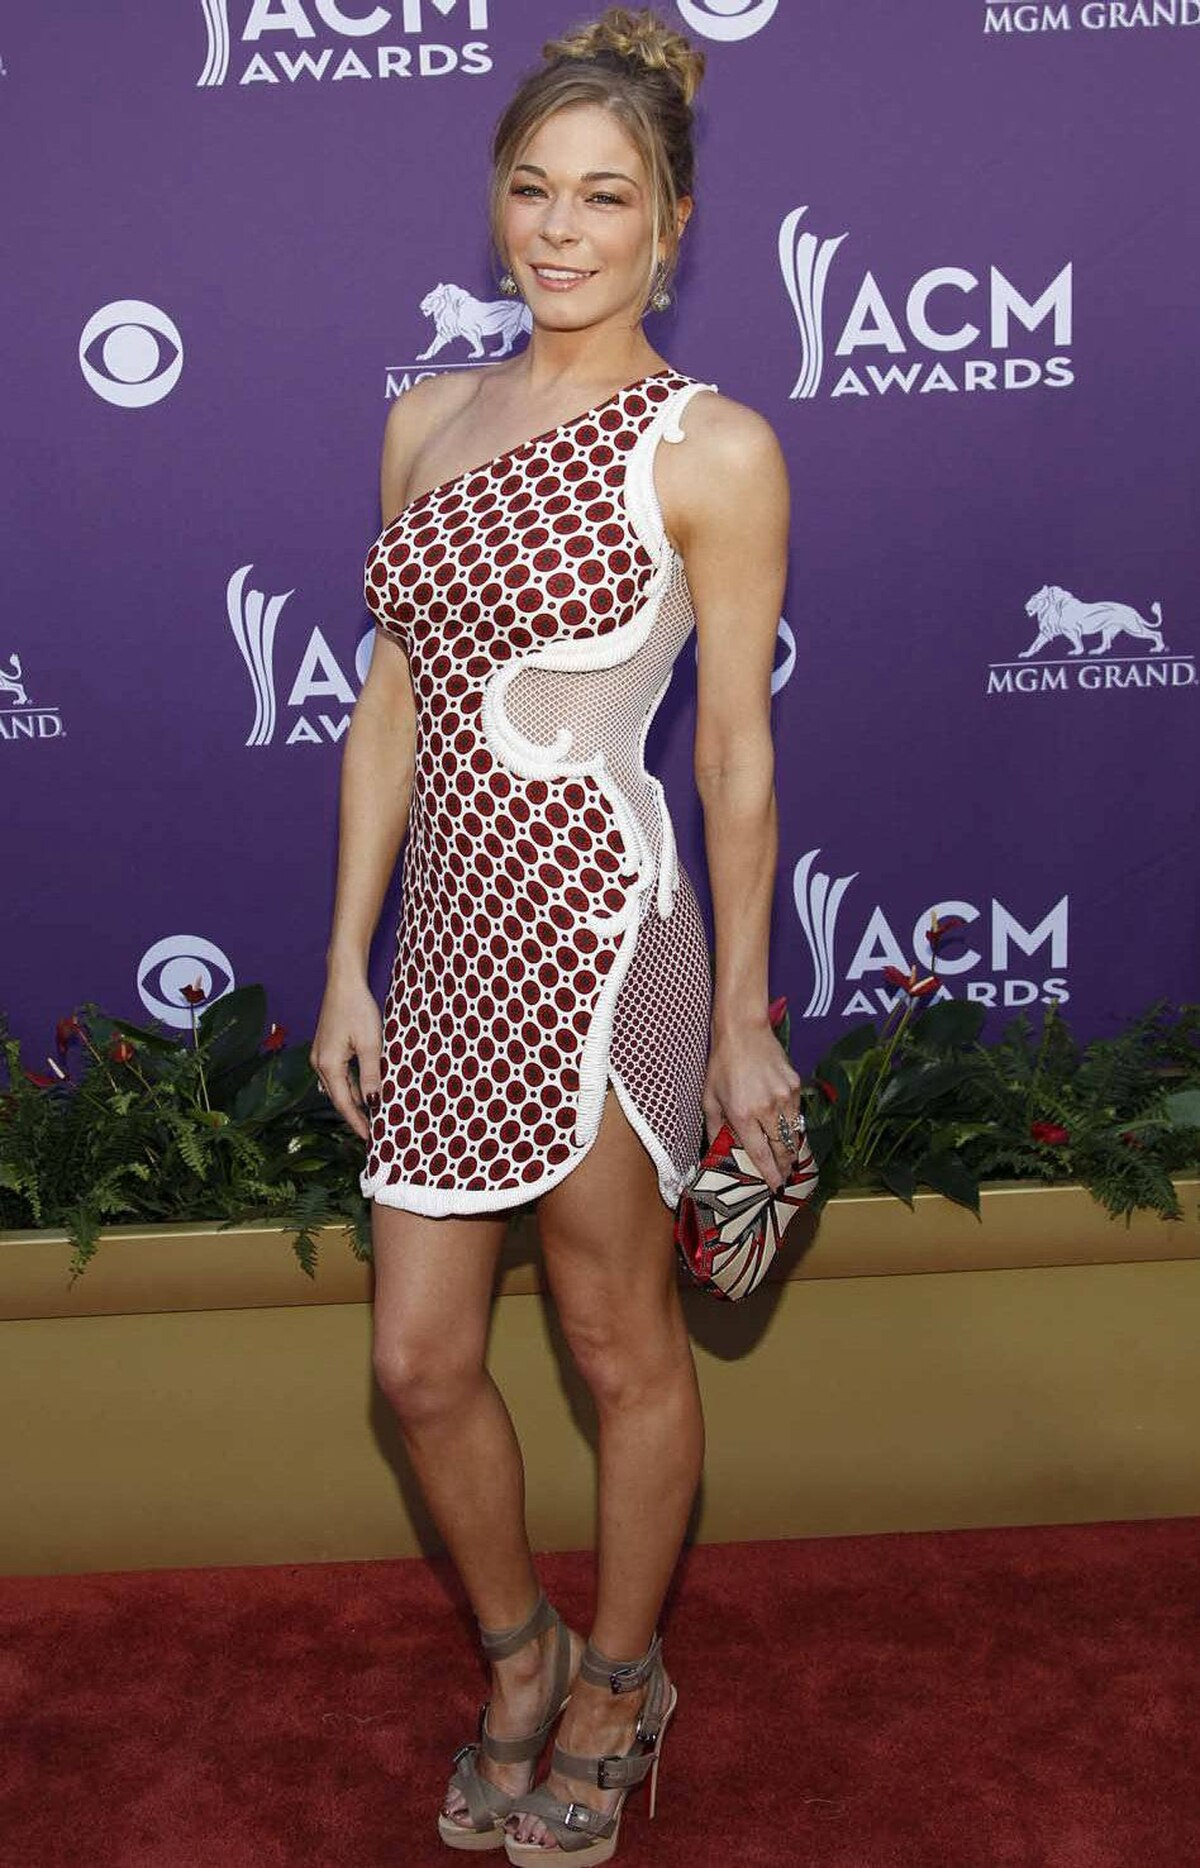 LeAnn Rimes was also stunningly successful at turning a deaf ear to the pleas of her fashion advisors at the Academy of Country Music Awards in Las Vegas on Sunday.